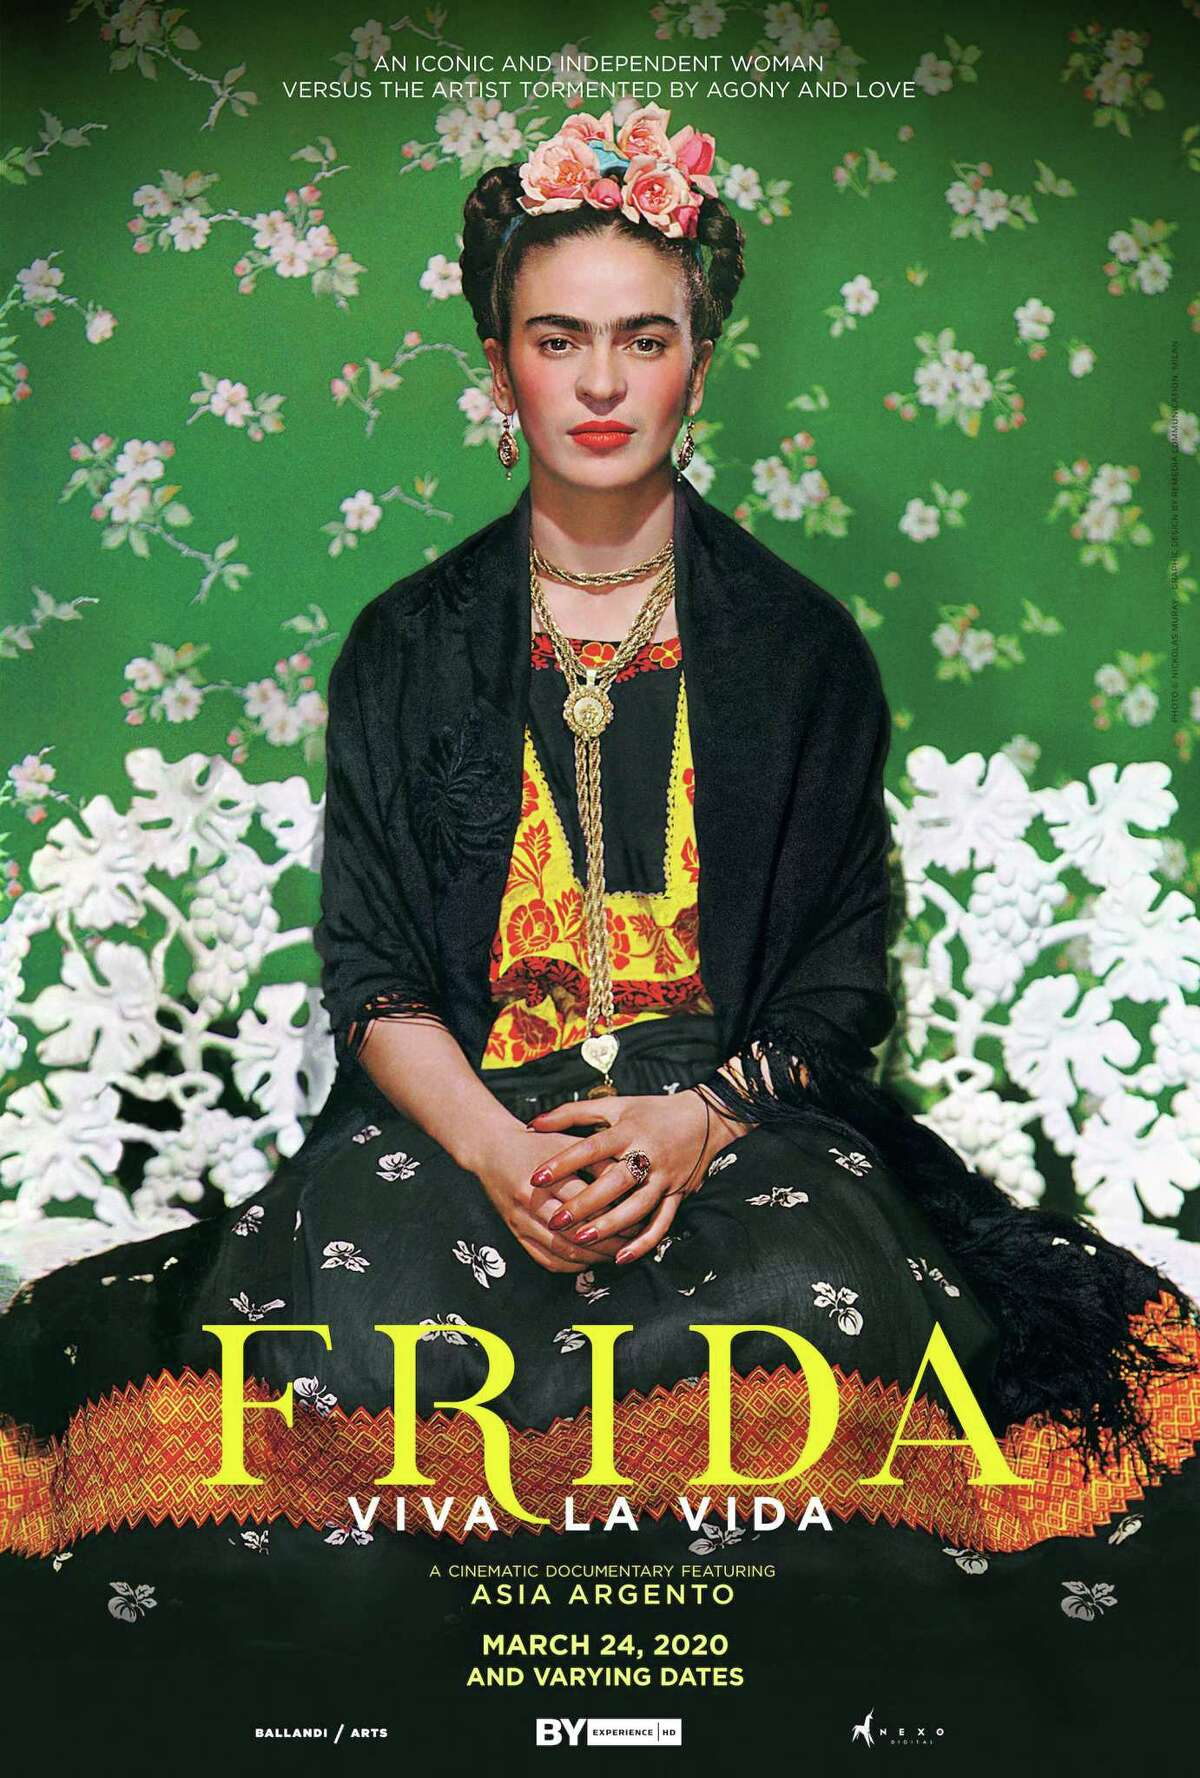 Frida - Viva La Vida will be screened on March 24 at 7:30 p.m. at the Ridgefield Playhouse, 80 East Ridge Road, Ridgefield. Tickets are $15. For more information, visit ridgefieldplayhouse.org.